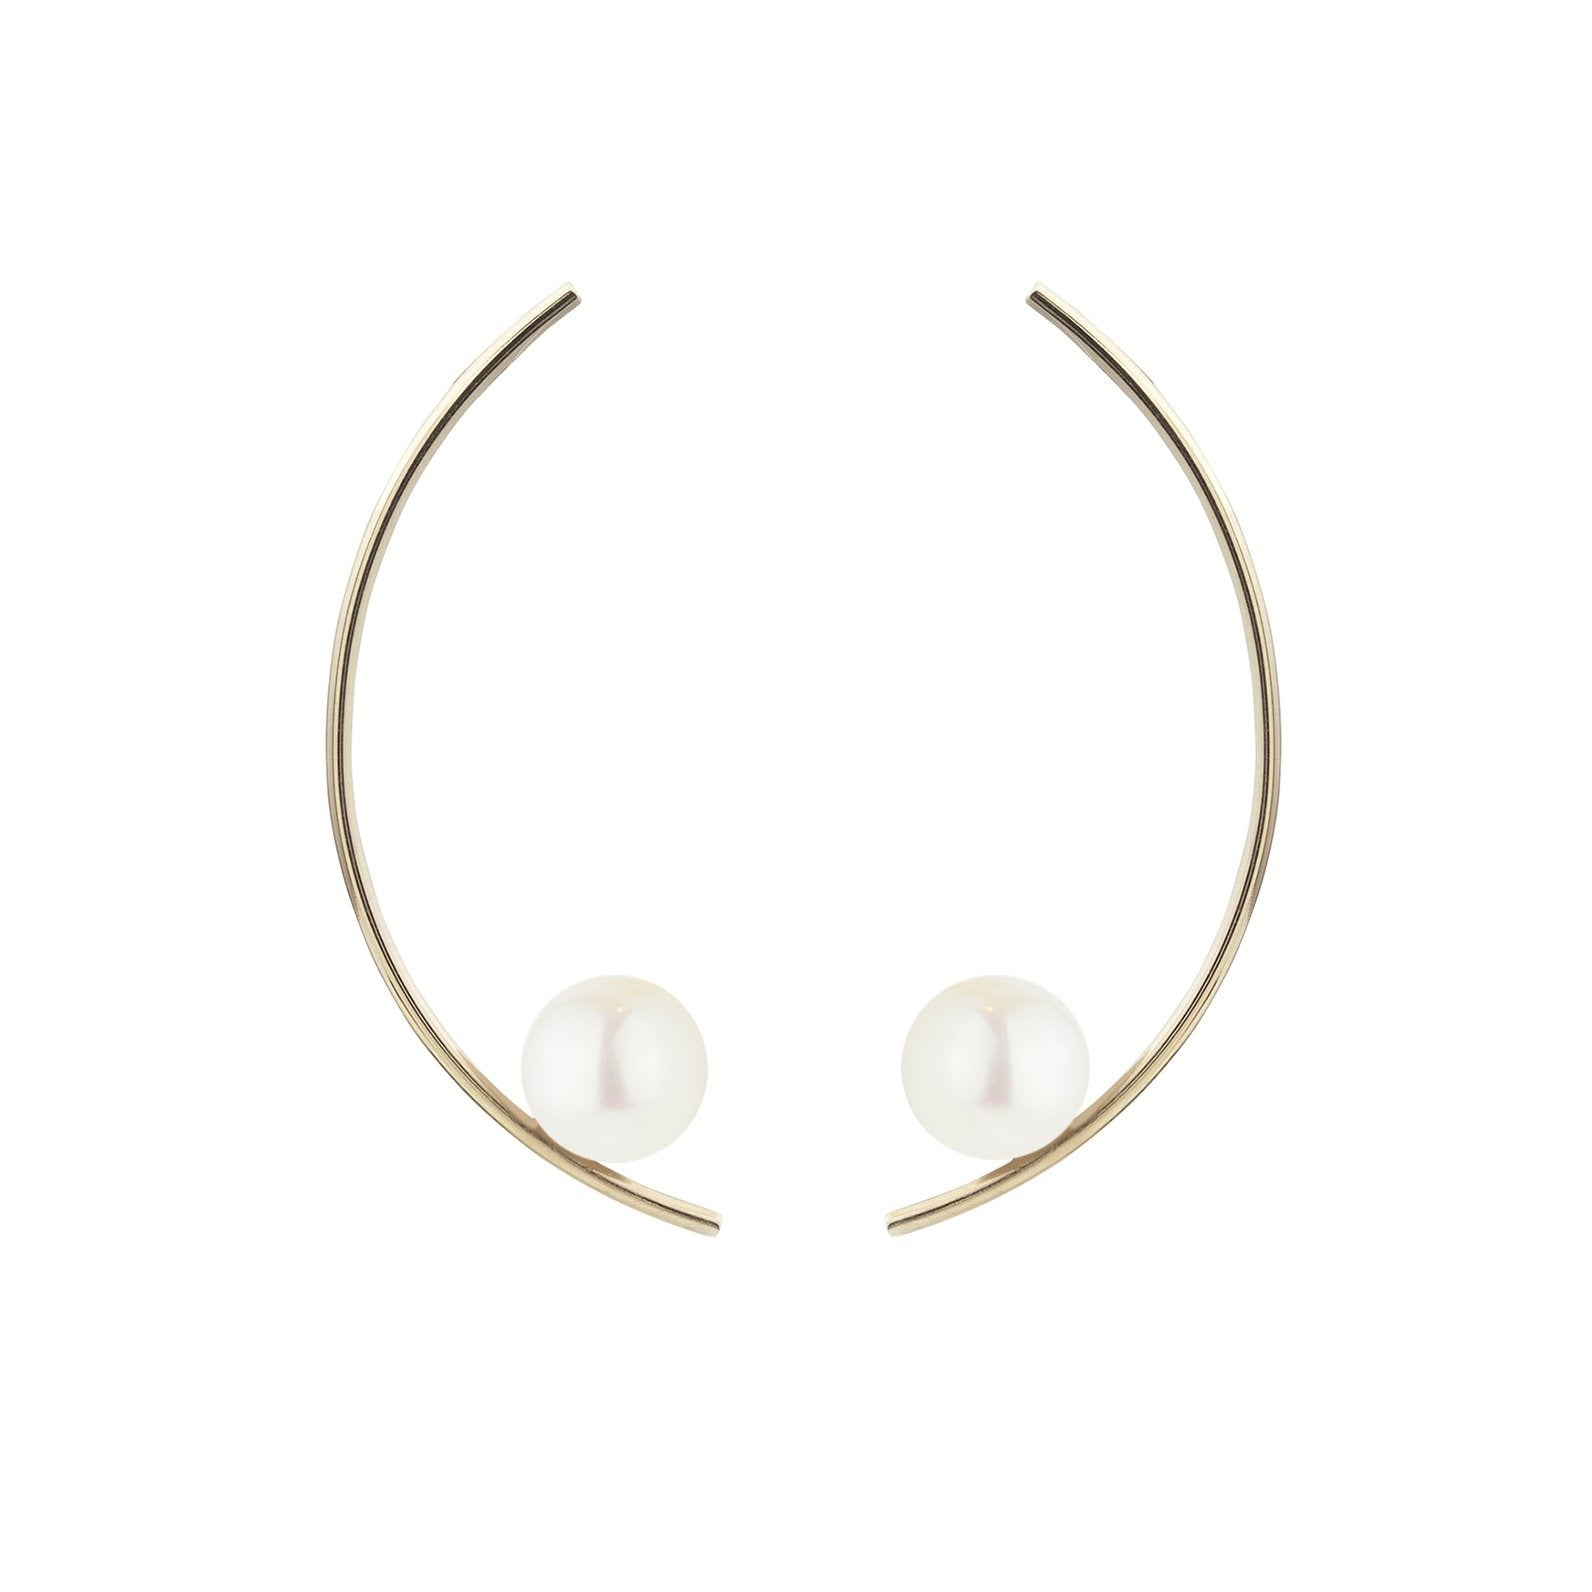 TREVISO EARRINGS, WHITE PEARL